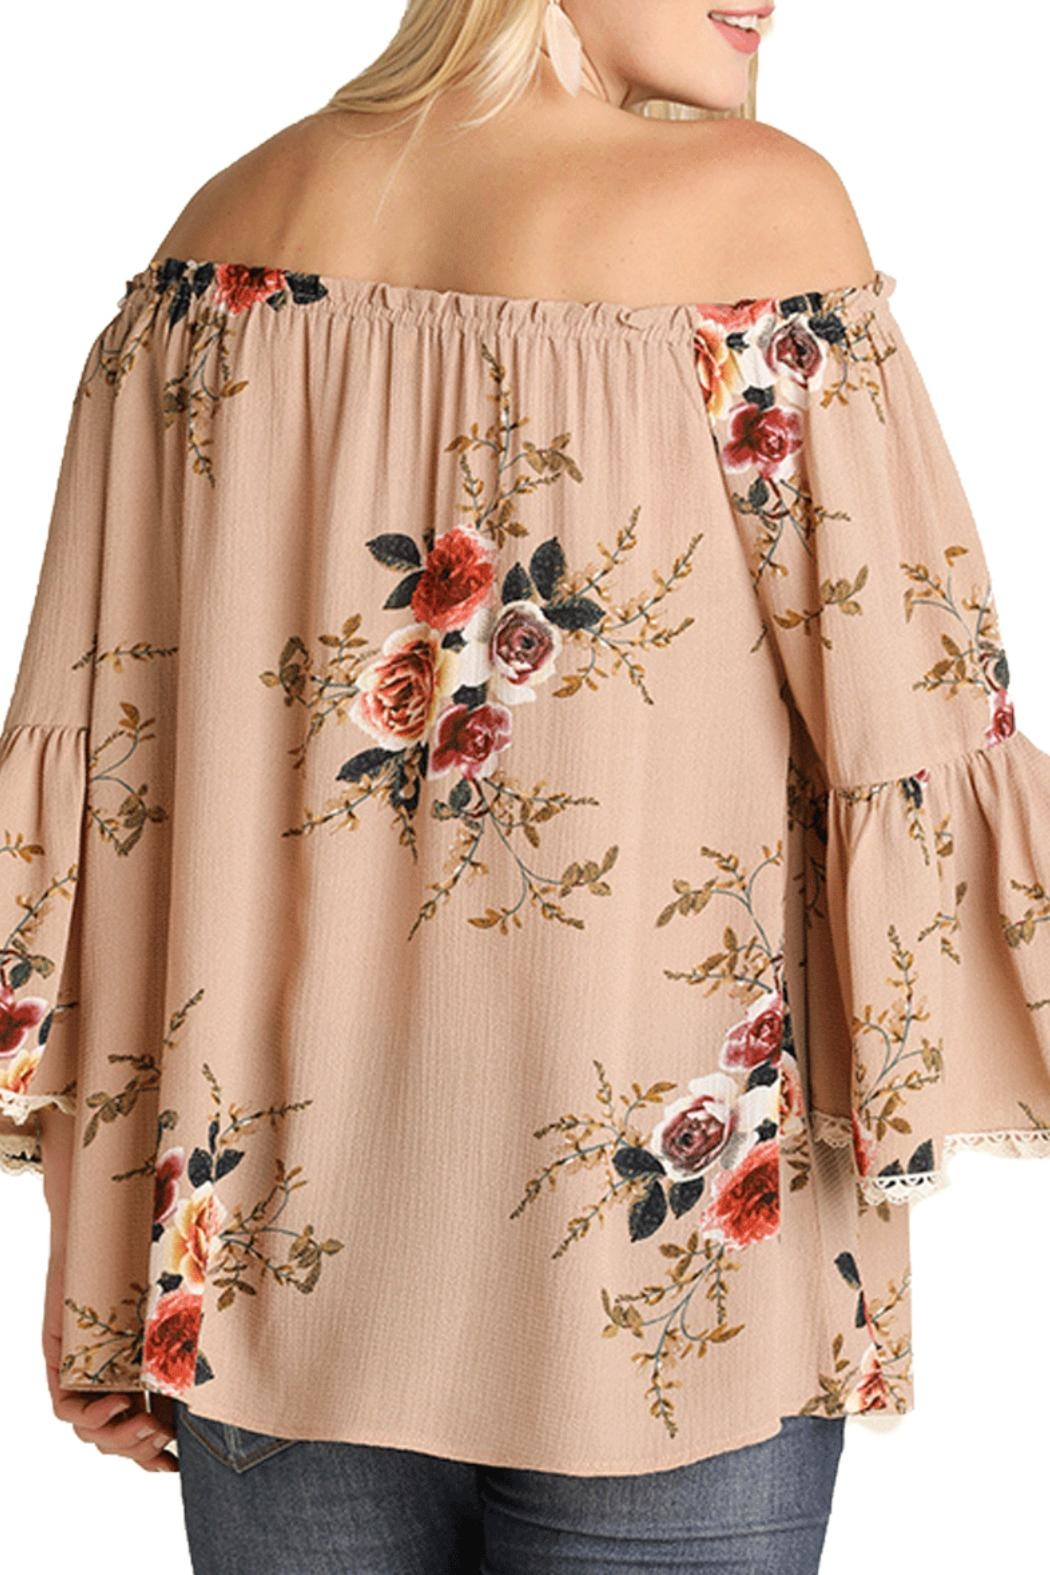 Umgee USA Brown Floral Top - Side Cropped Image